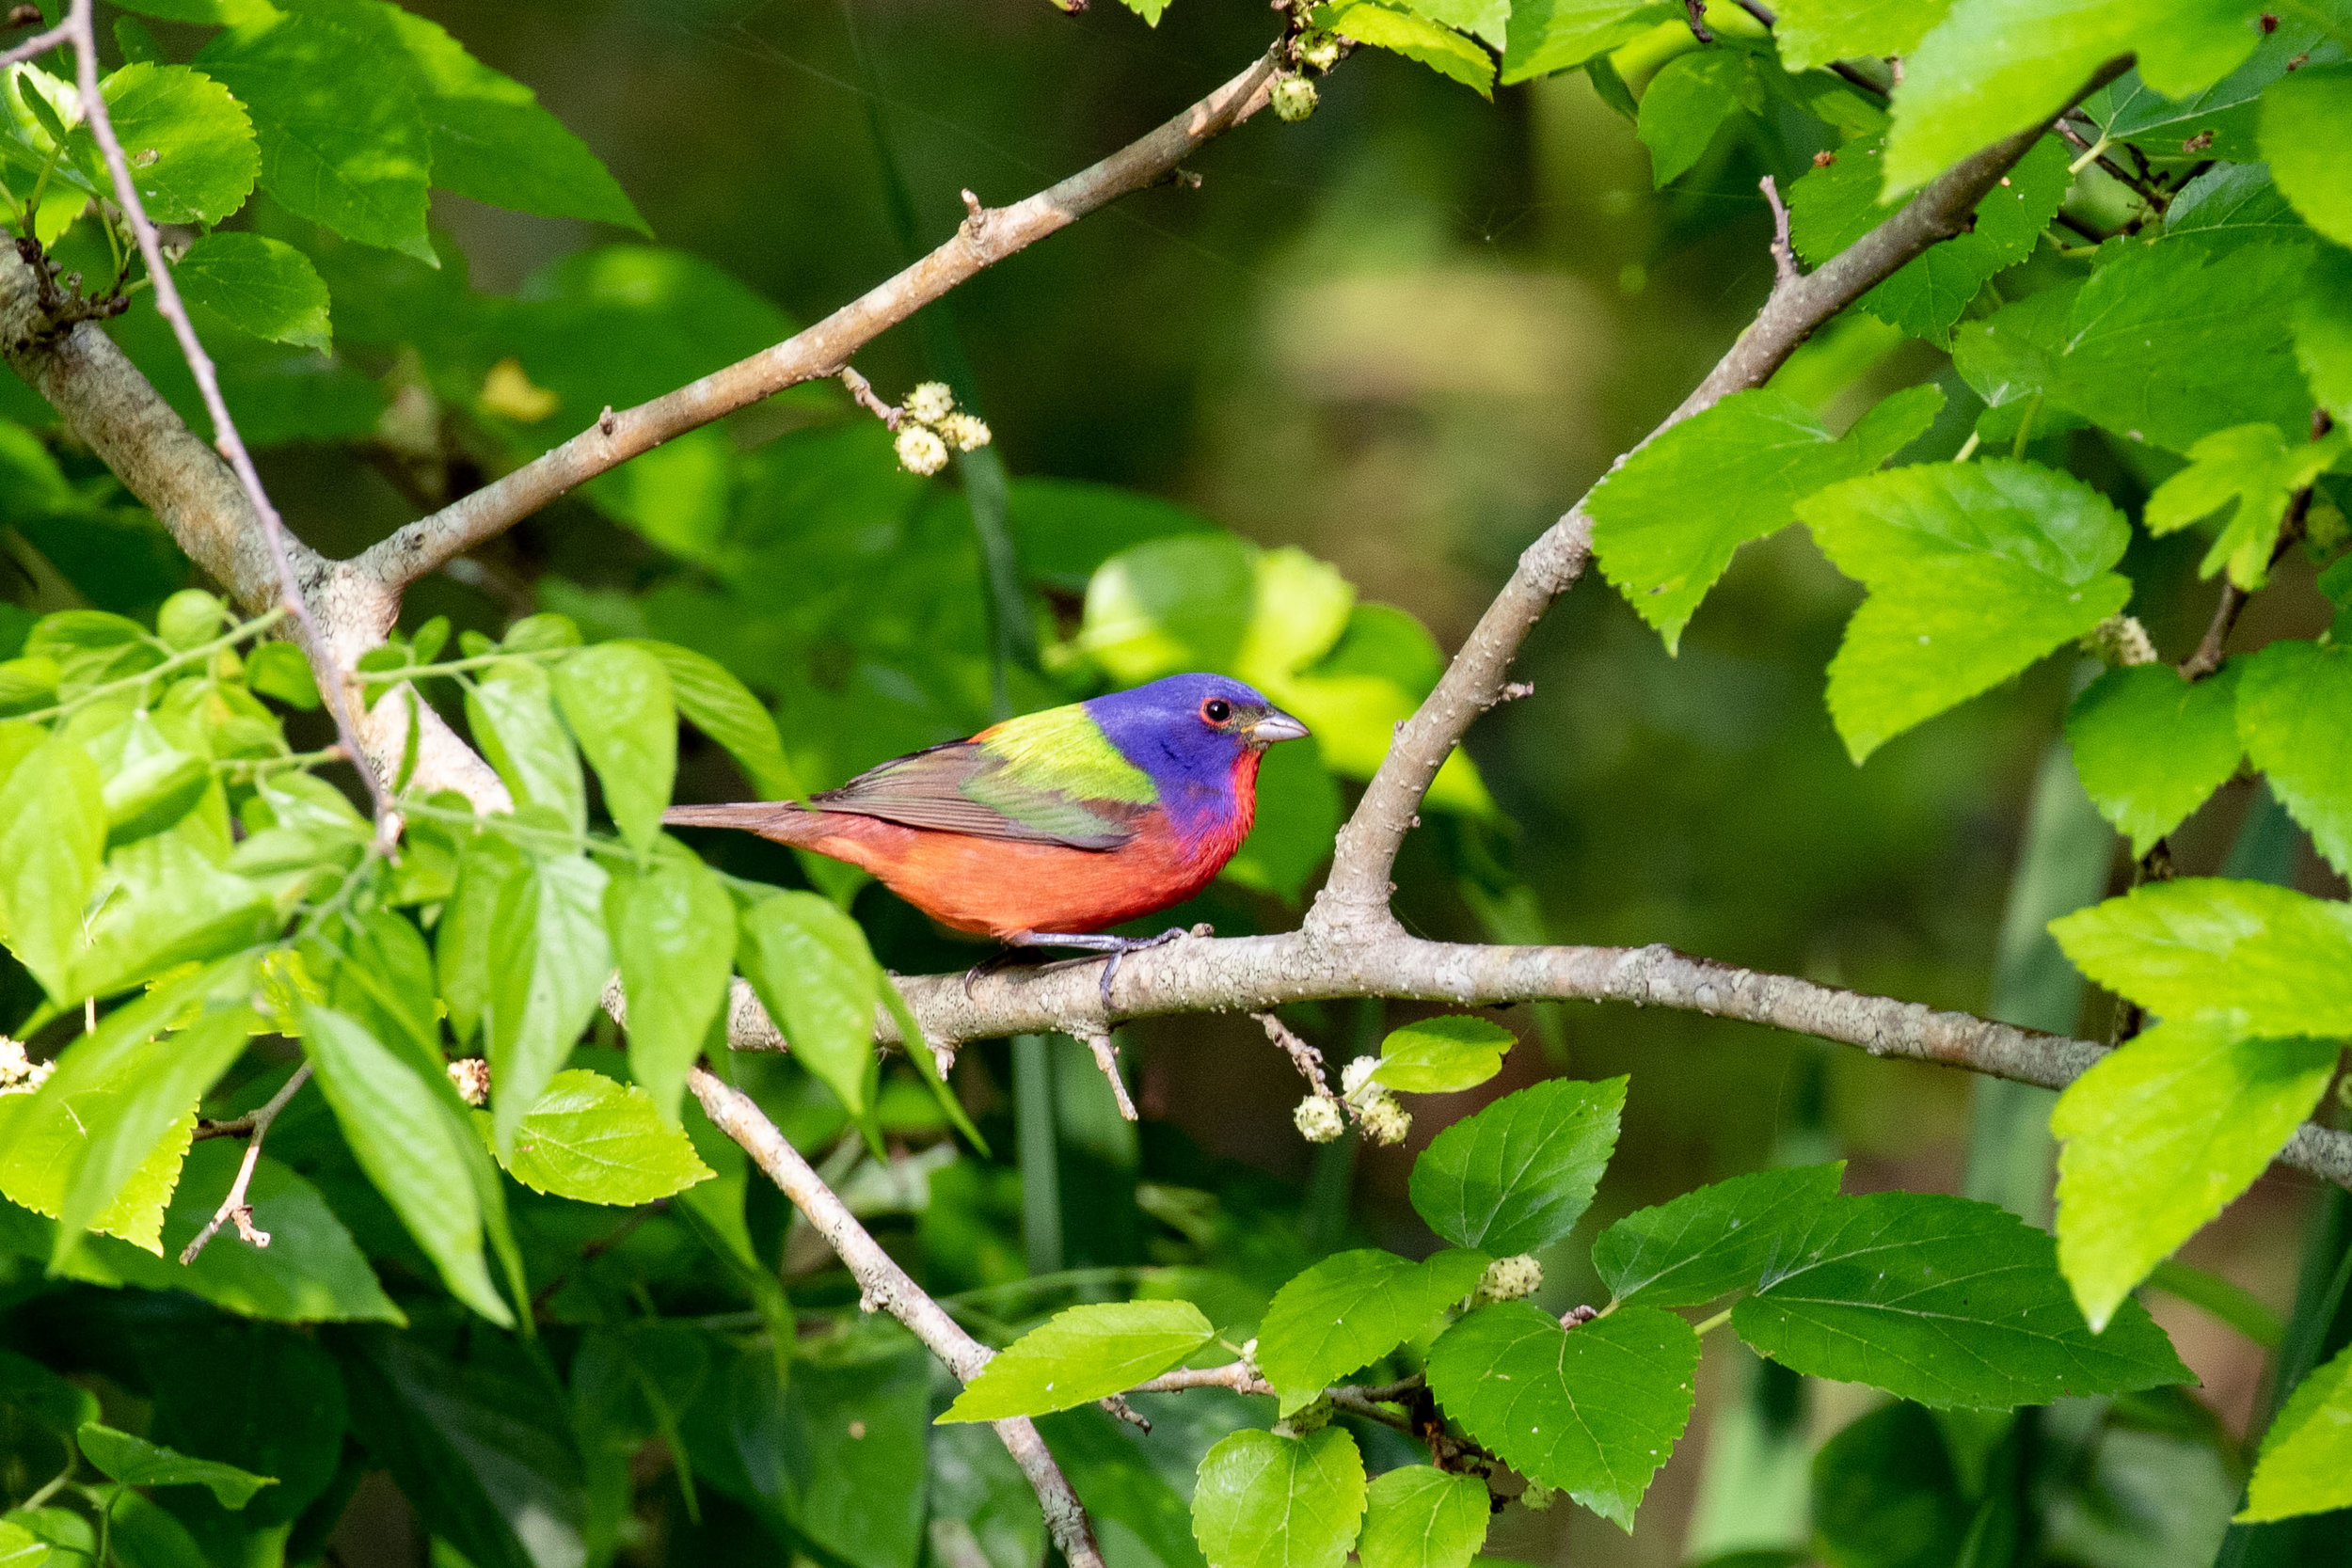 We saw Painted Bunting on both our Upper Texas Coast trip (where this photo was taken) and on our Texas Hill Country & Big Bend trips. Photo by Josh Engel.